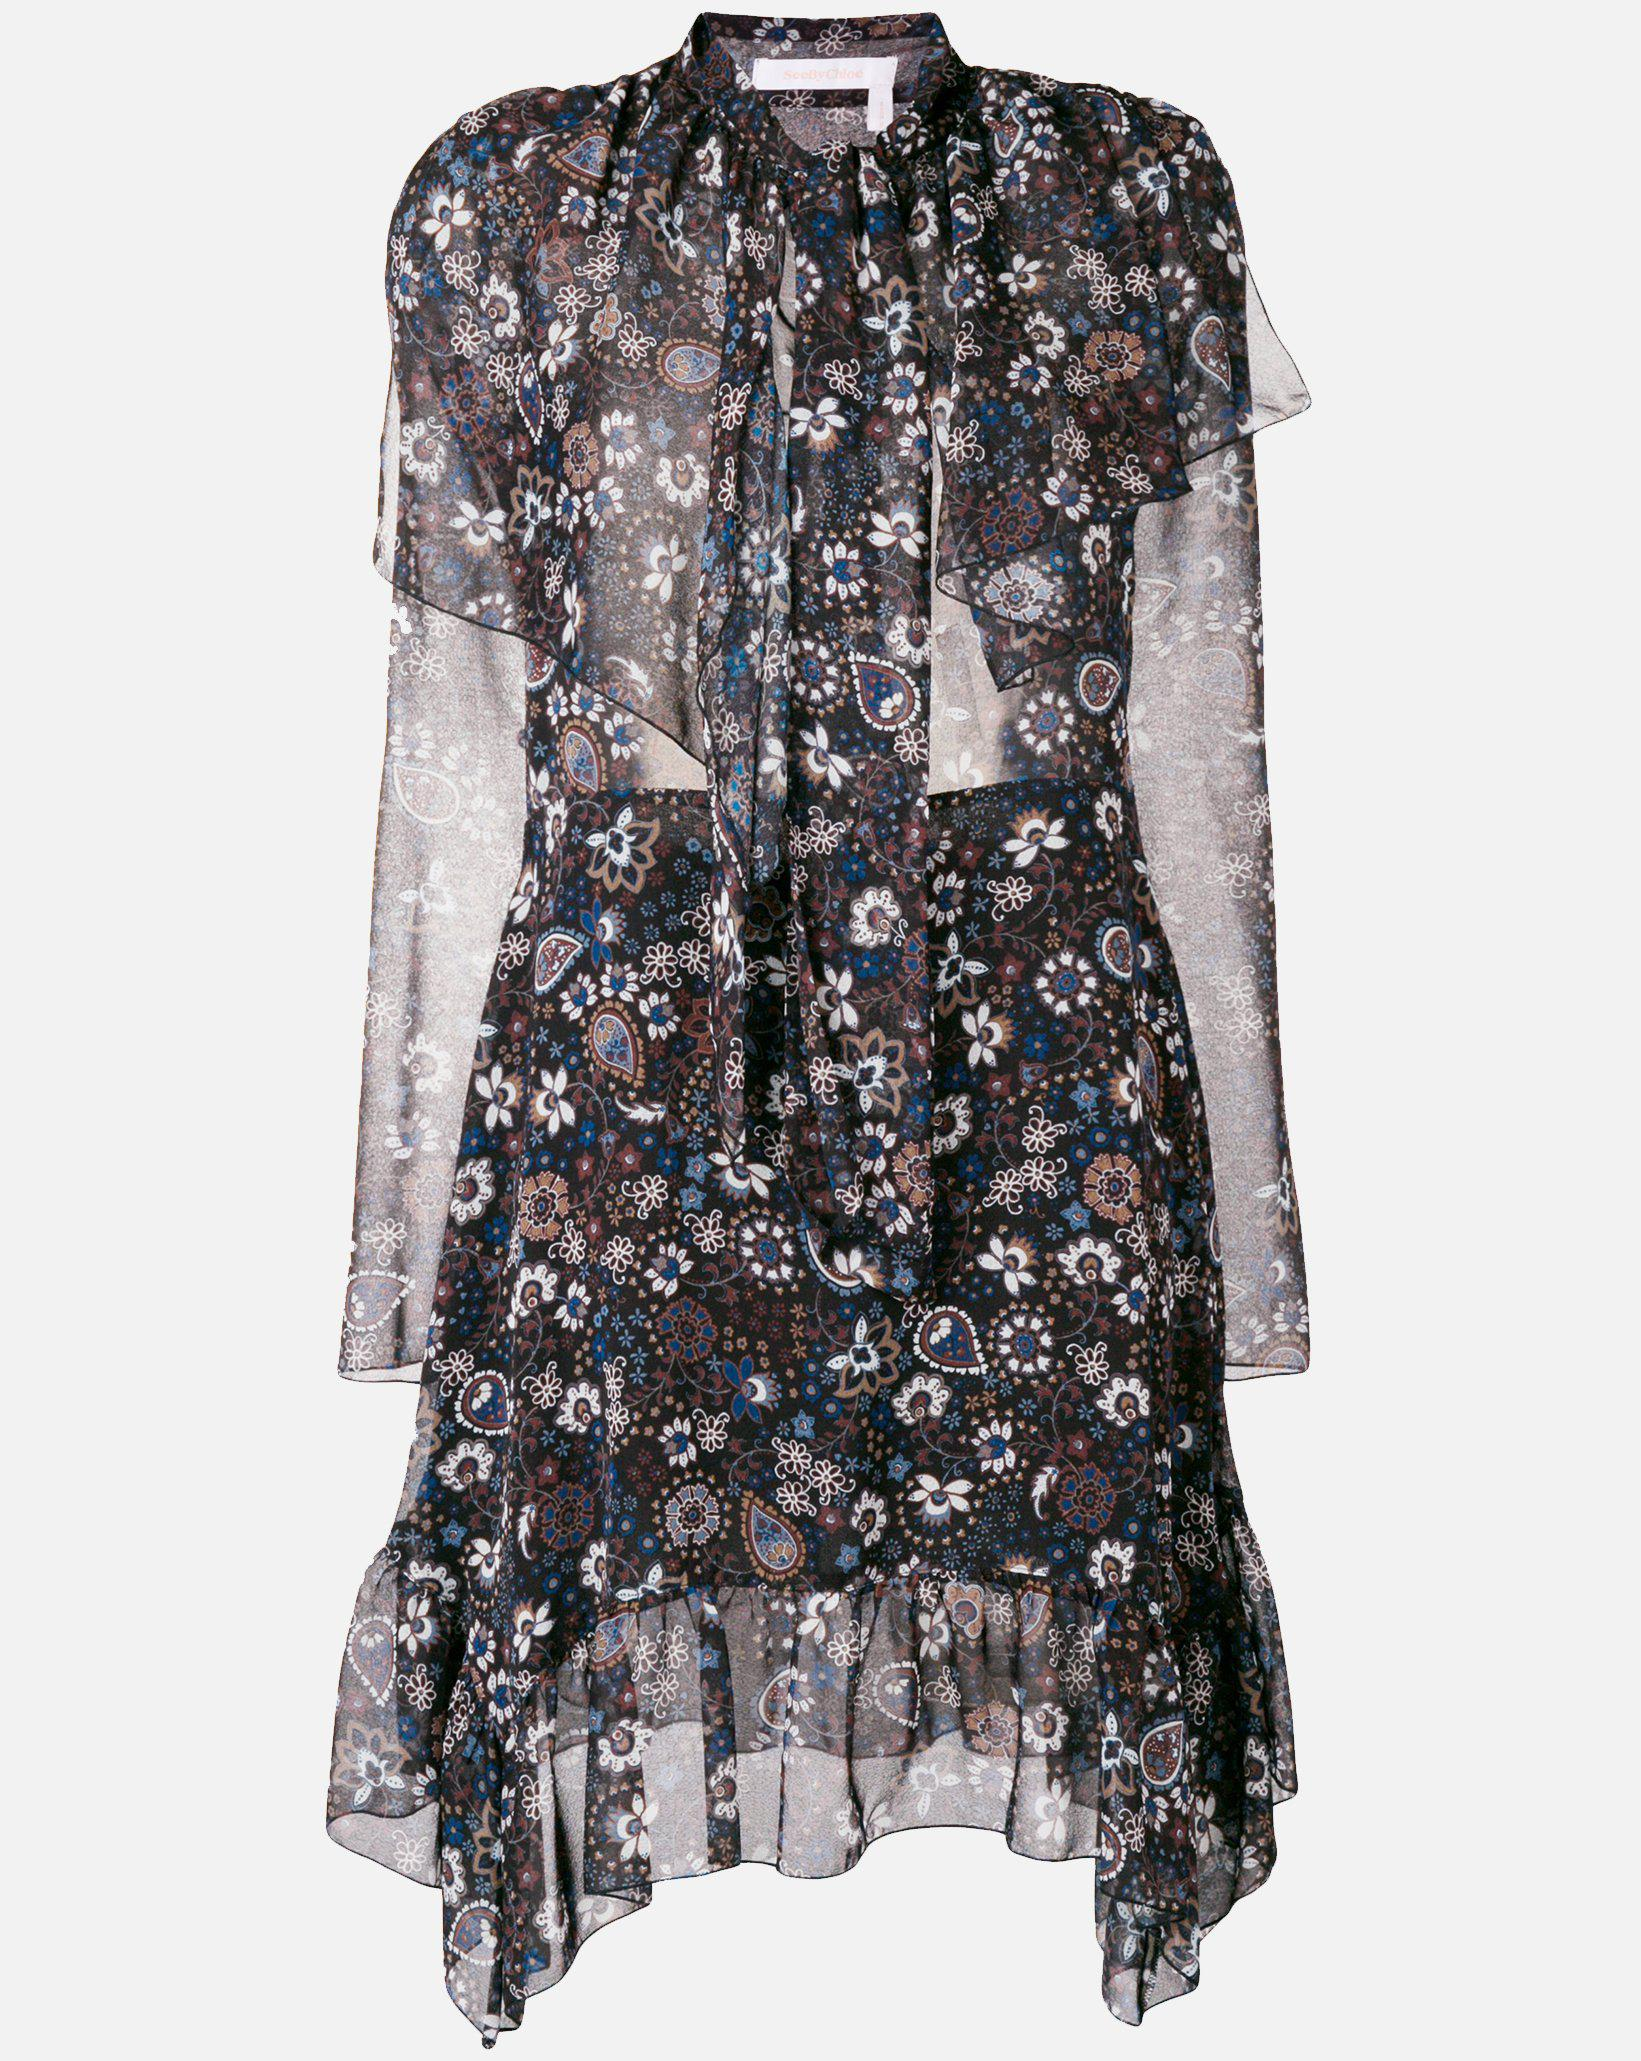 c98d294aa4d3e Lyst - See By Chloé Micro Paisley Georgette Dress In Multicolor Black in  Black